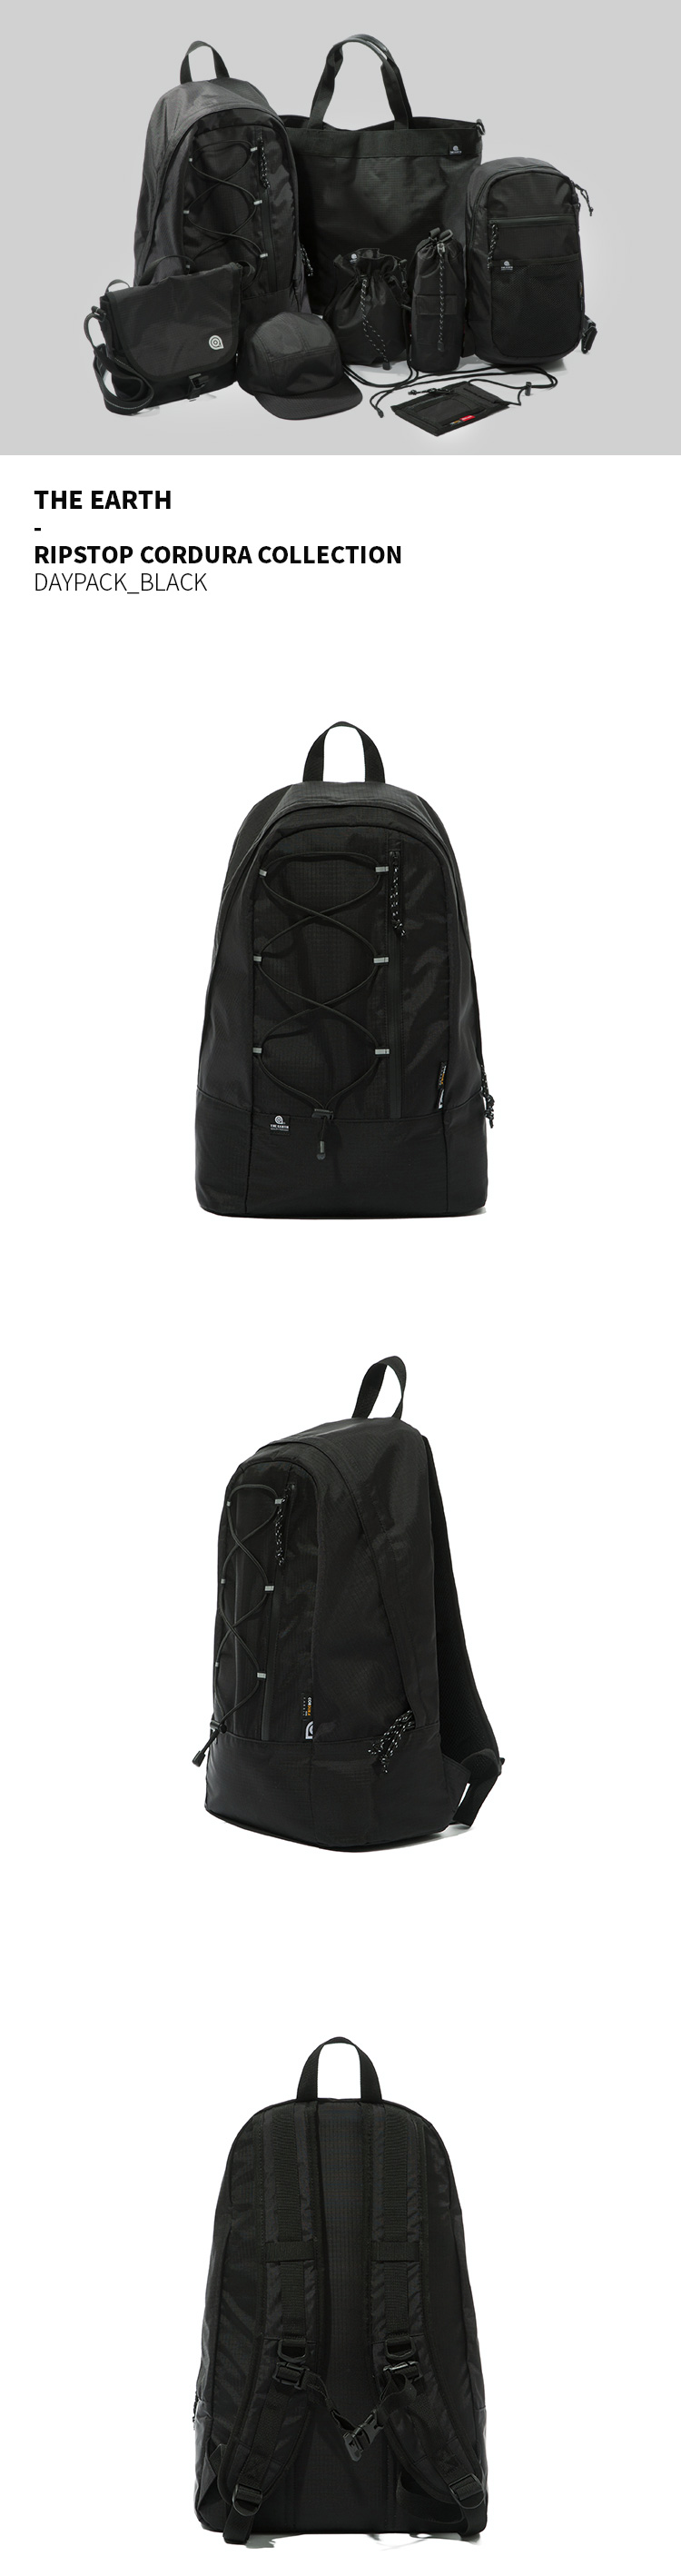 디얼스(THE EARTH) RIPSTOP CORDURA DAYPACK - BLACK